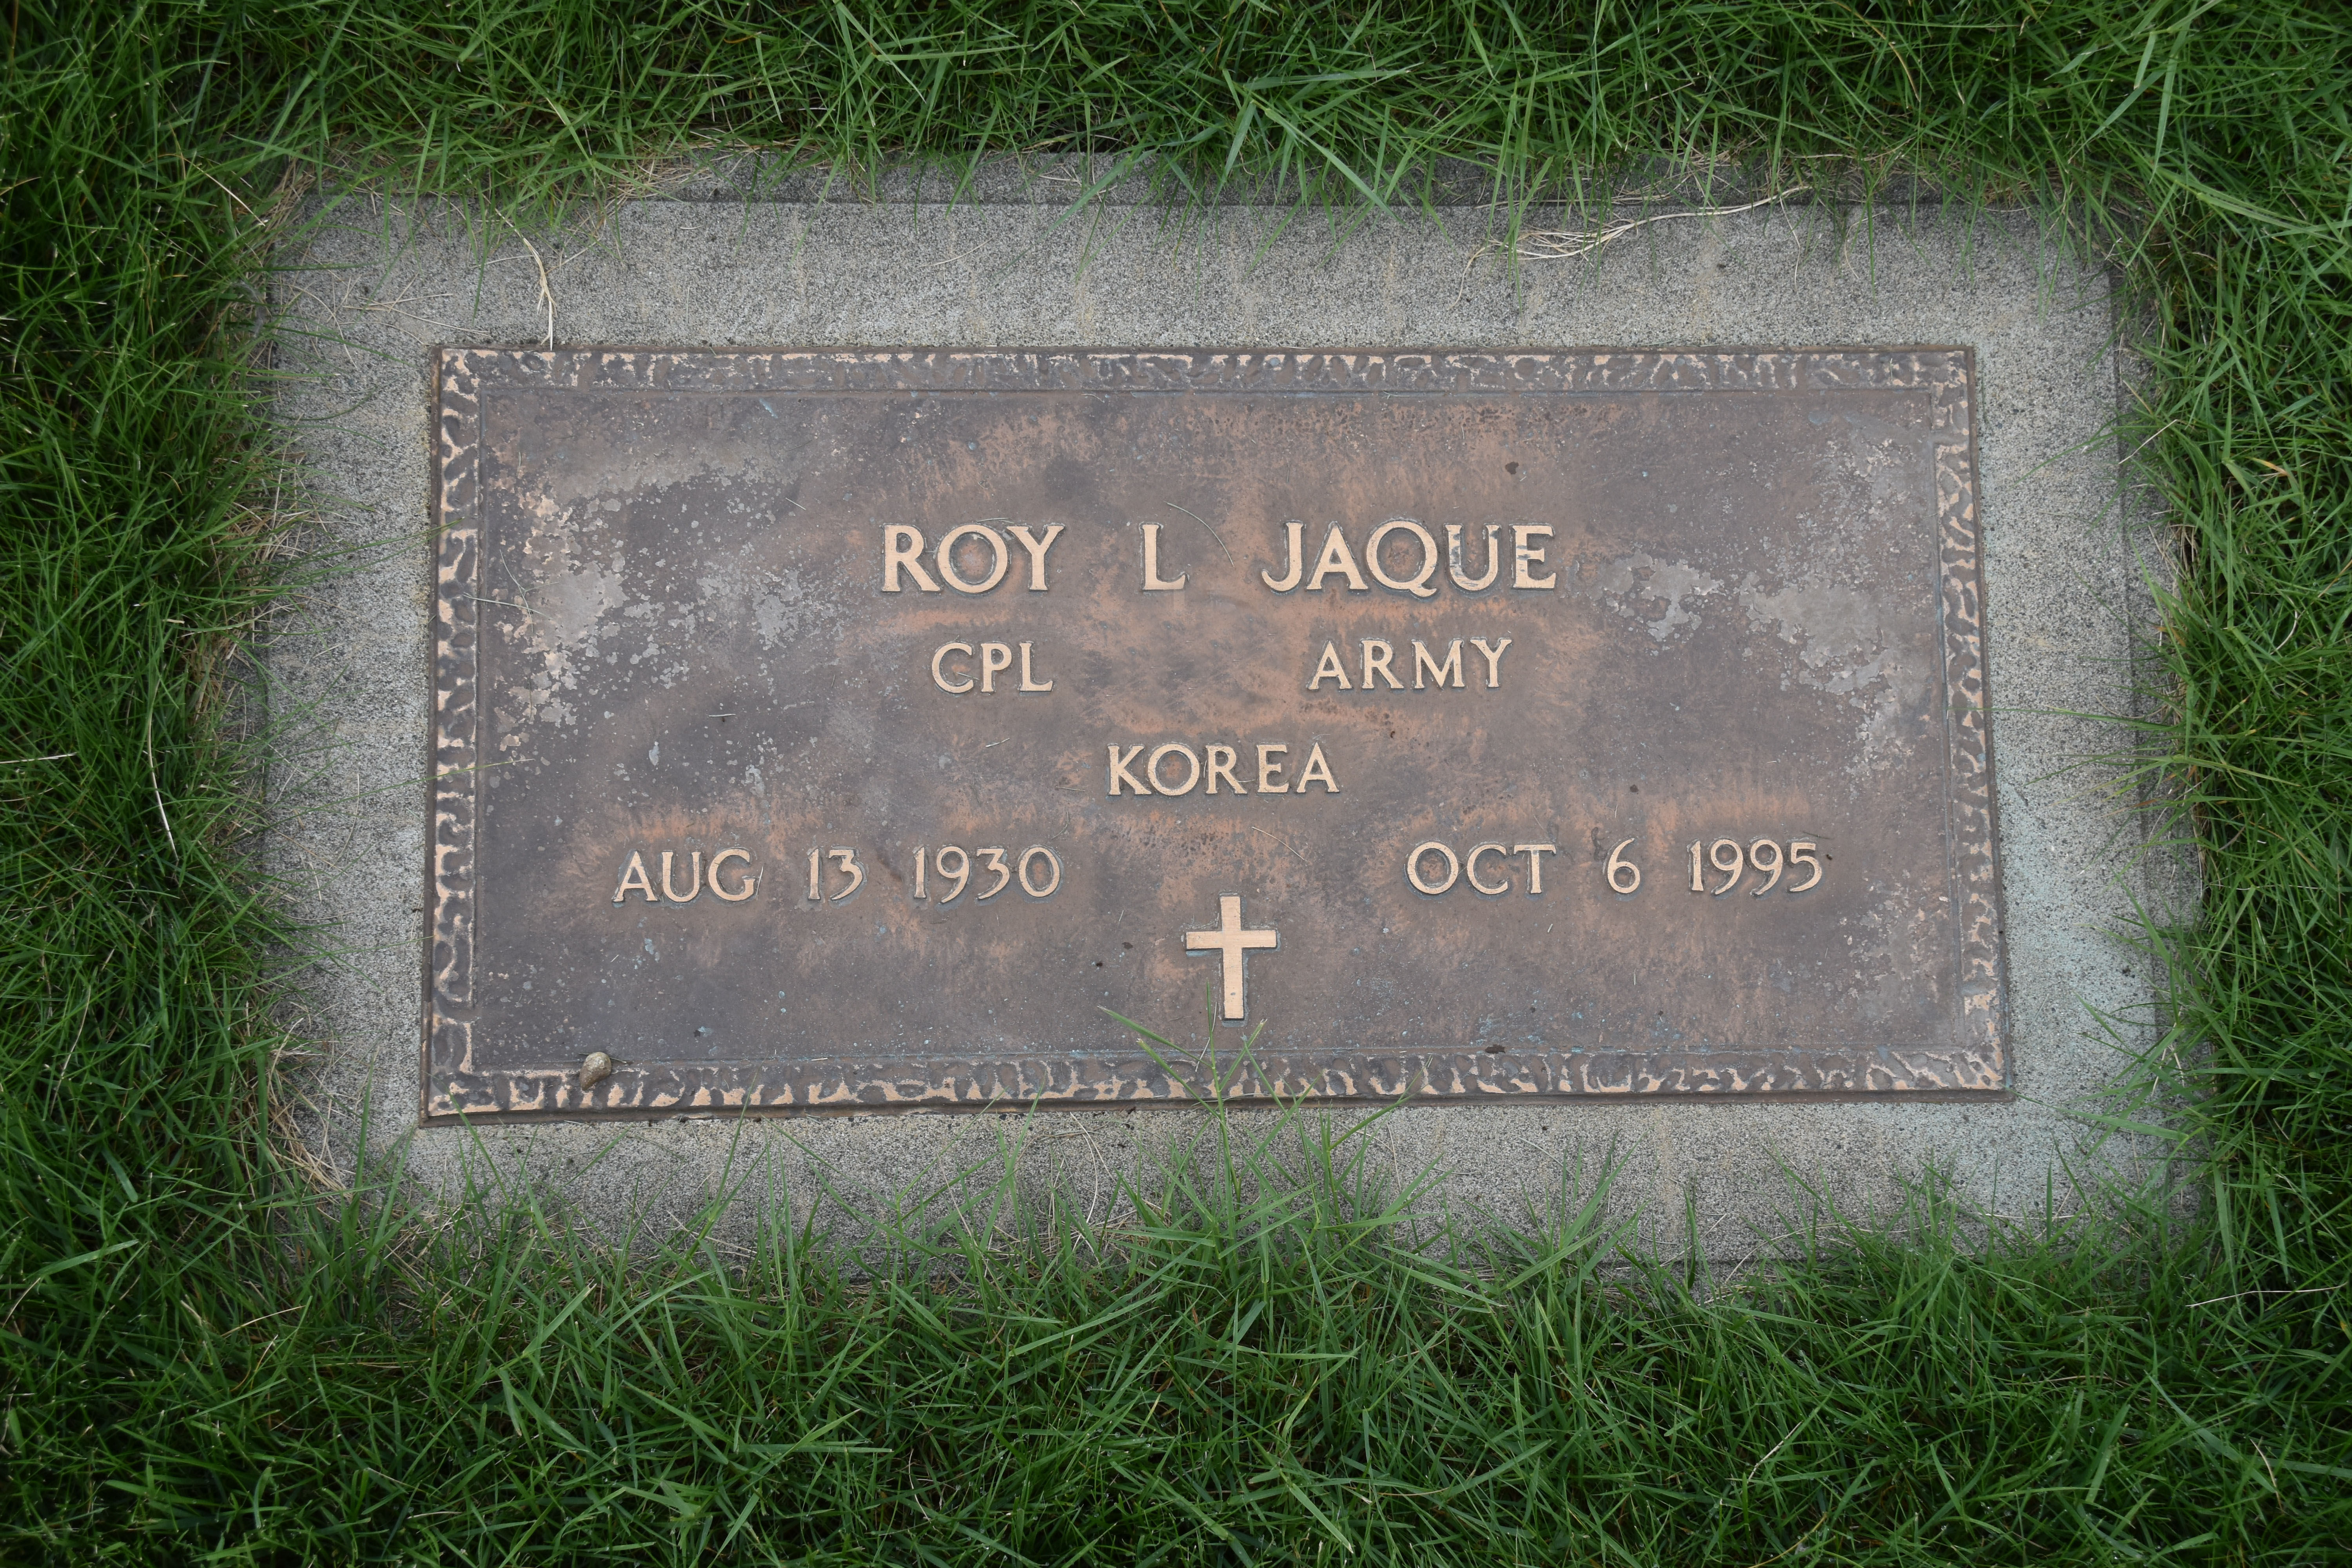 Corp Roy L Jaque